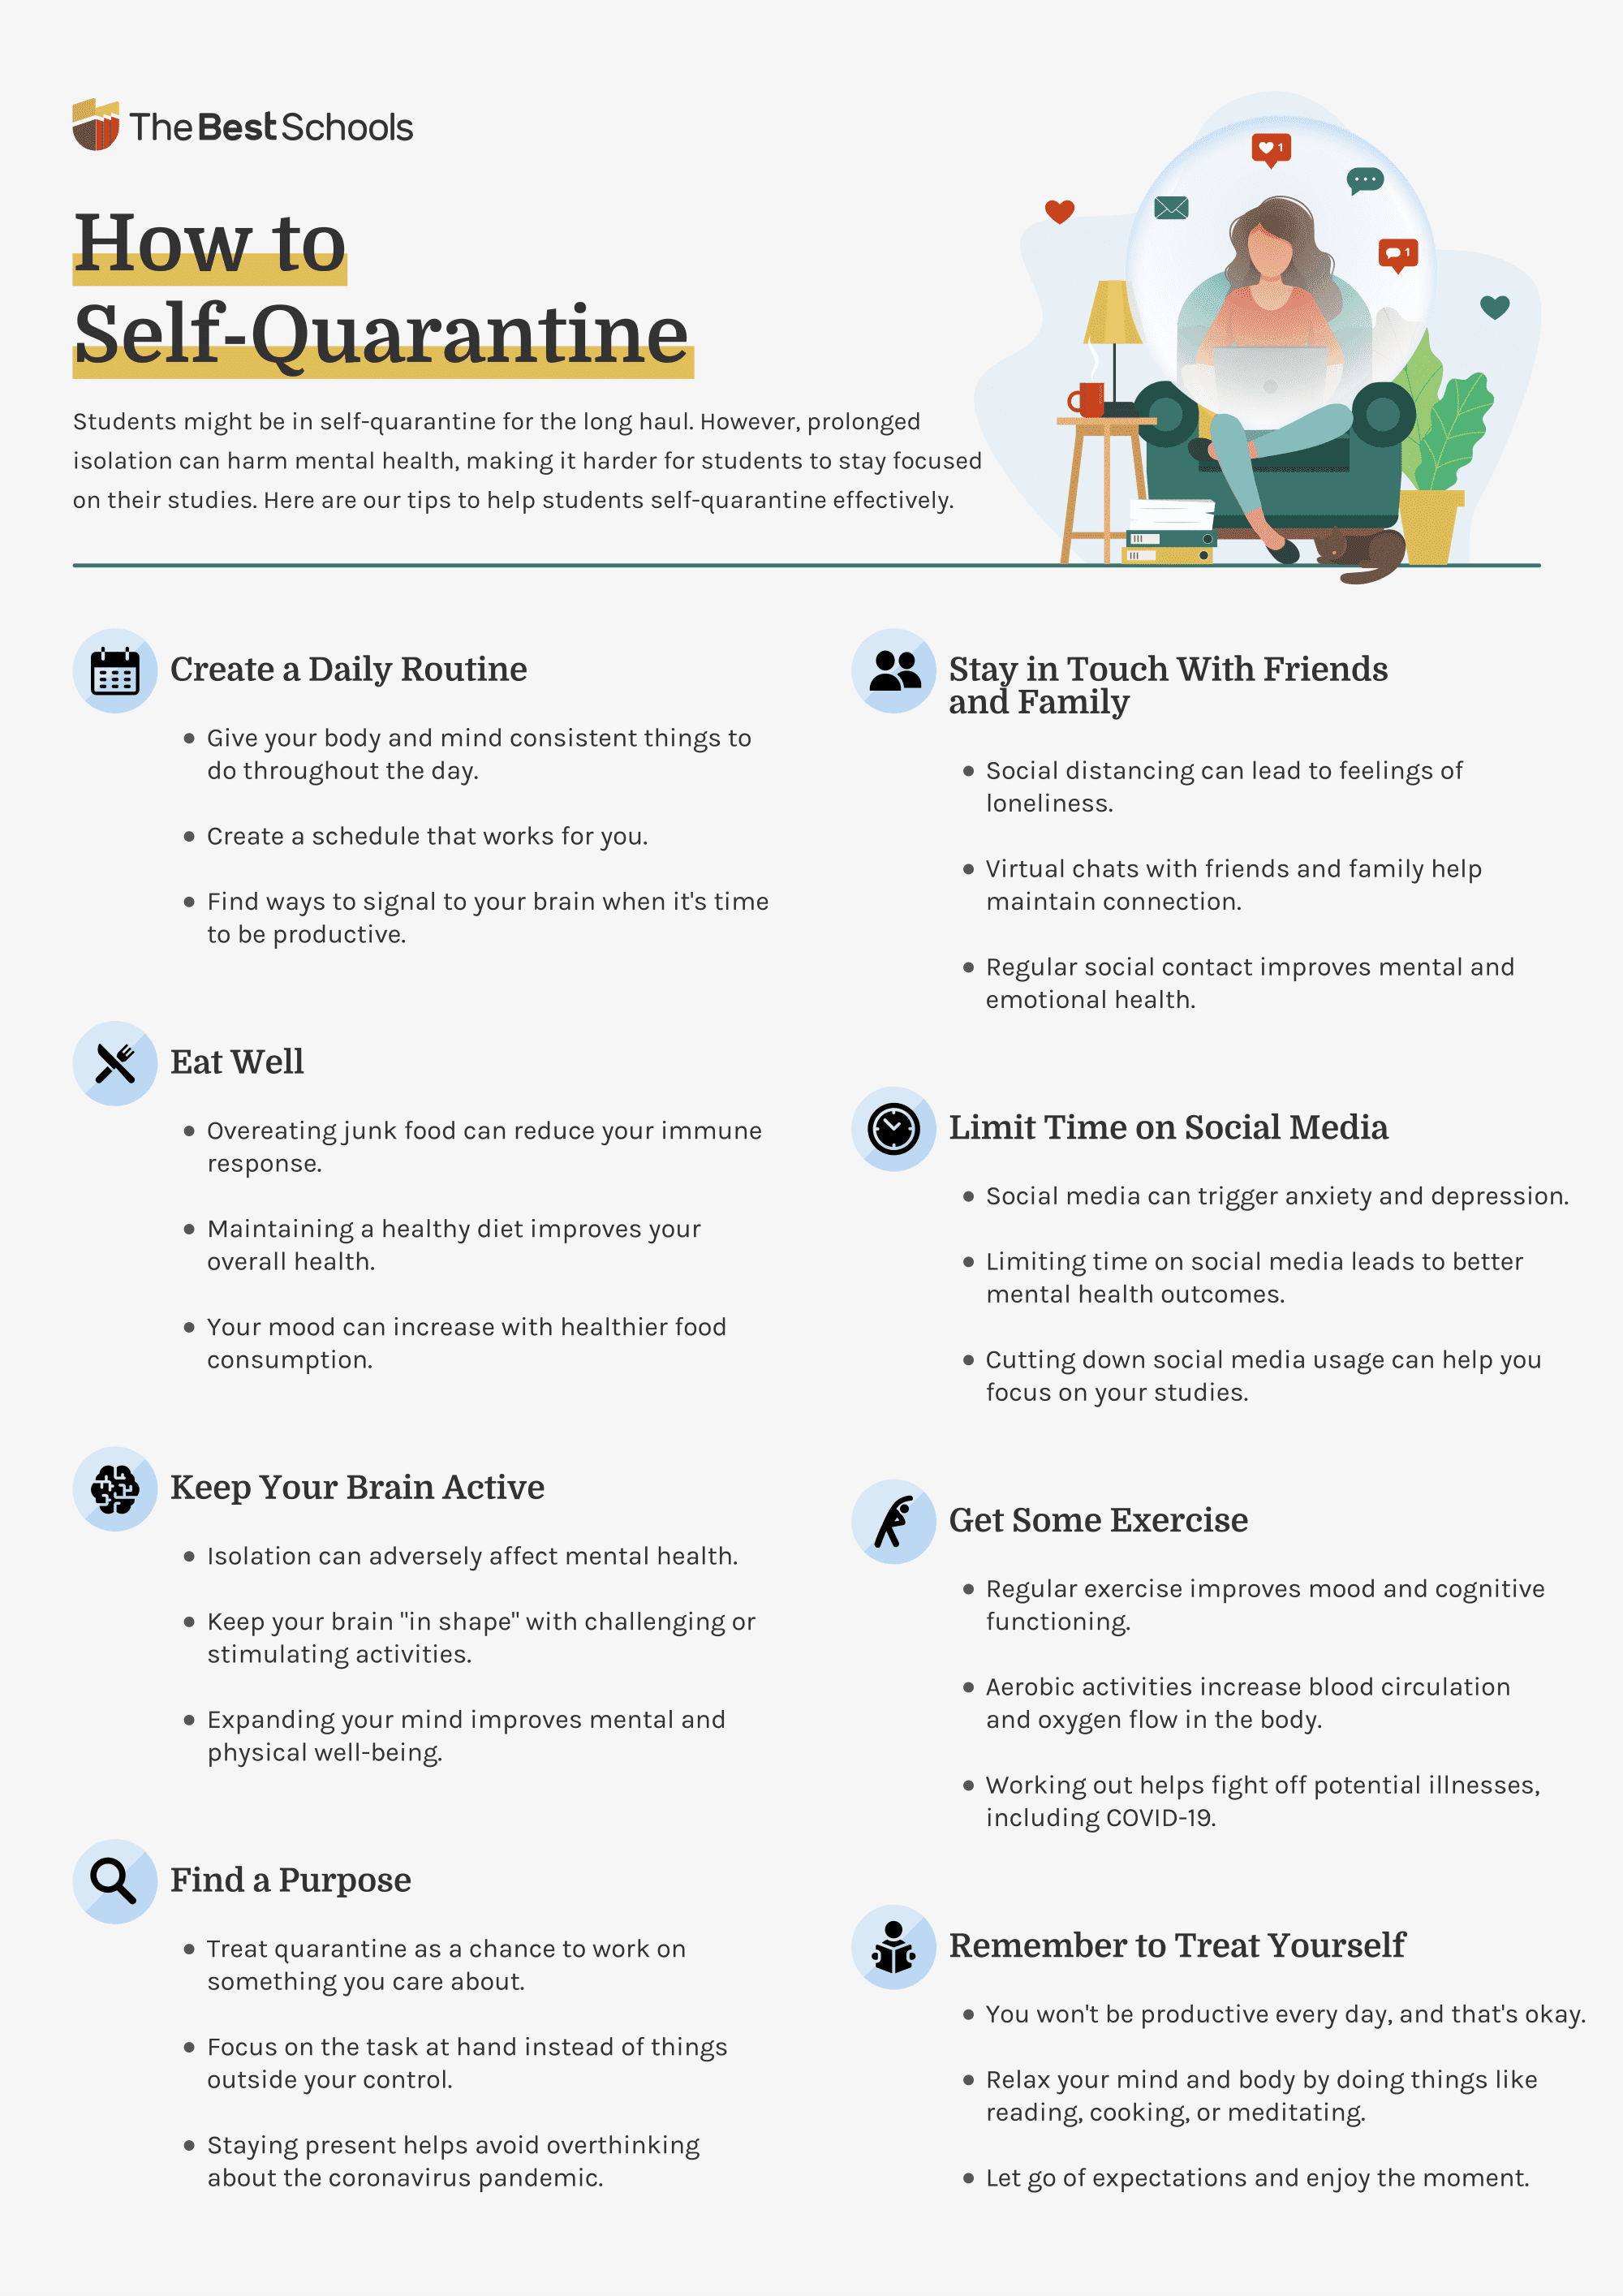 Image of an infographic that covers the top tips for self quarantining in college